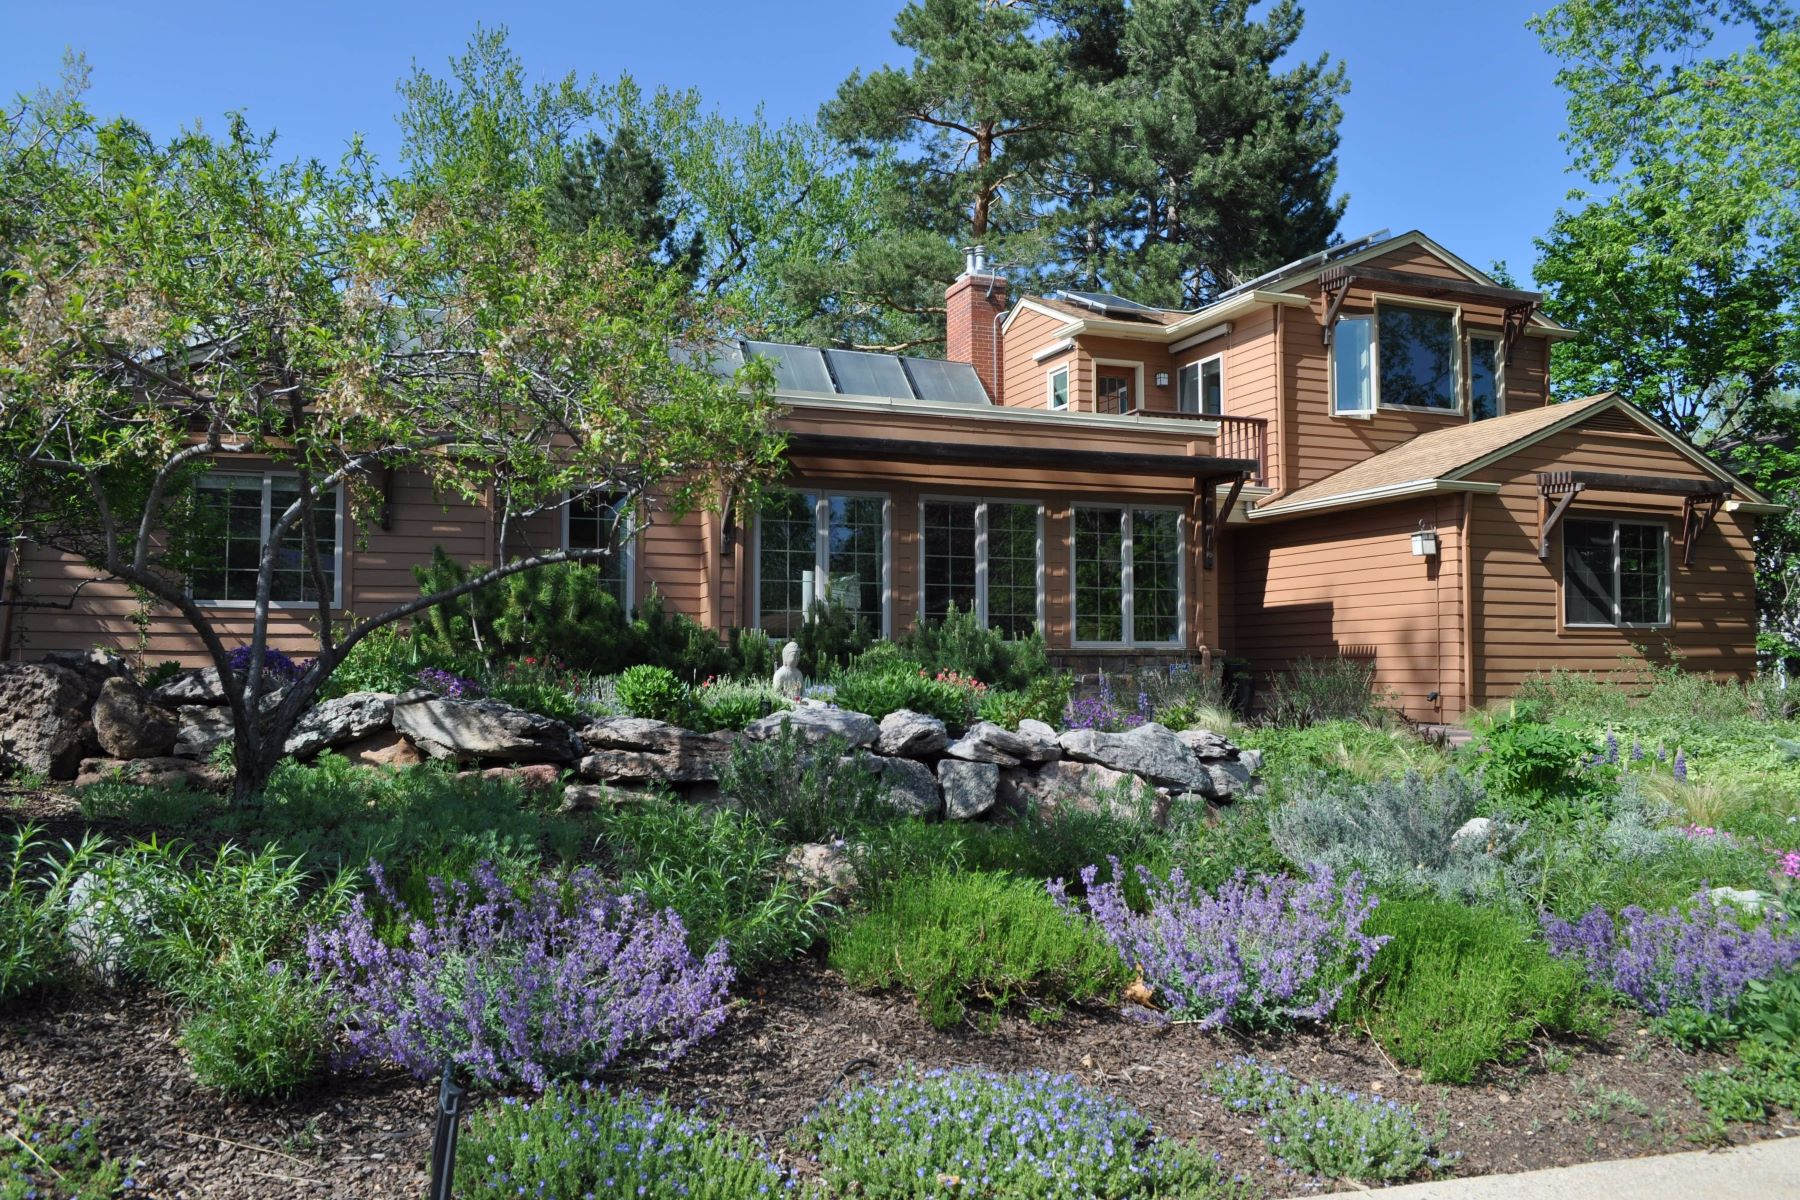 Single Family Home for Sale at Lower Chautauqua Living 1985 Bluebell Ave Boulder, Colorado, 80302 United States